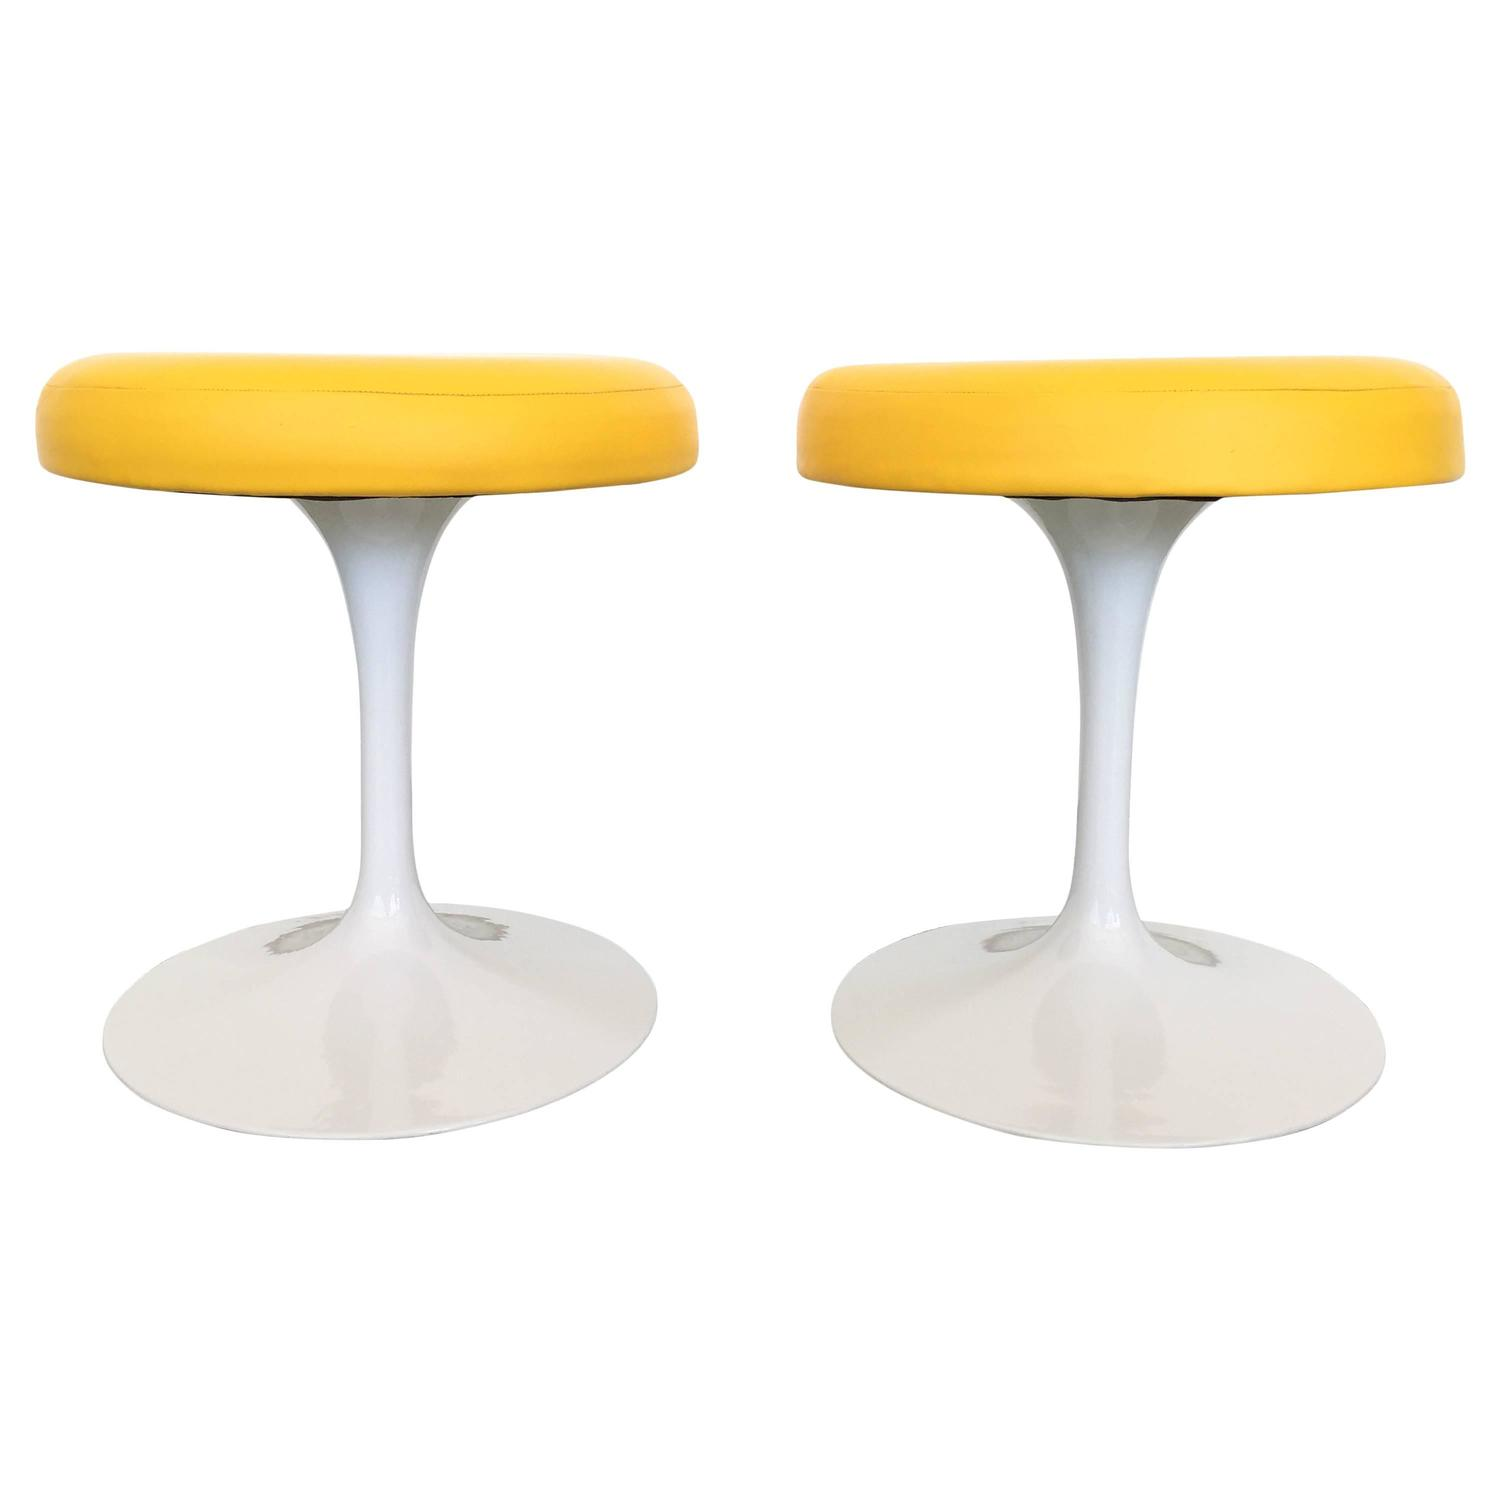 saarinen for knoll yellow tulip stools at 1stdibs